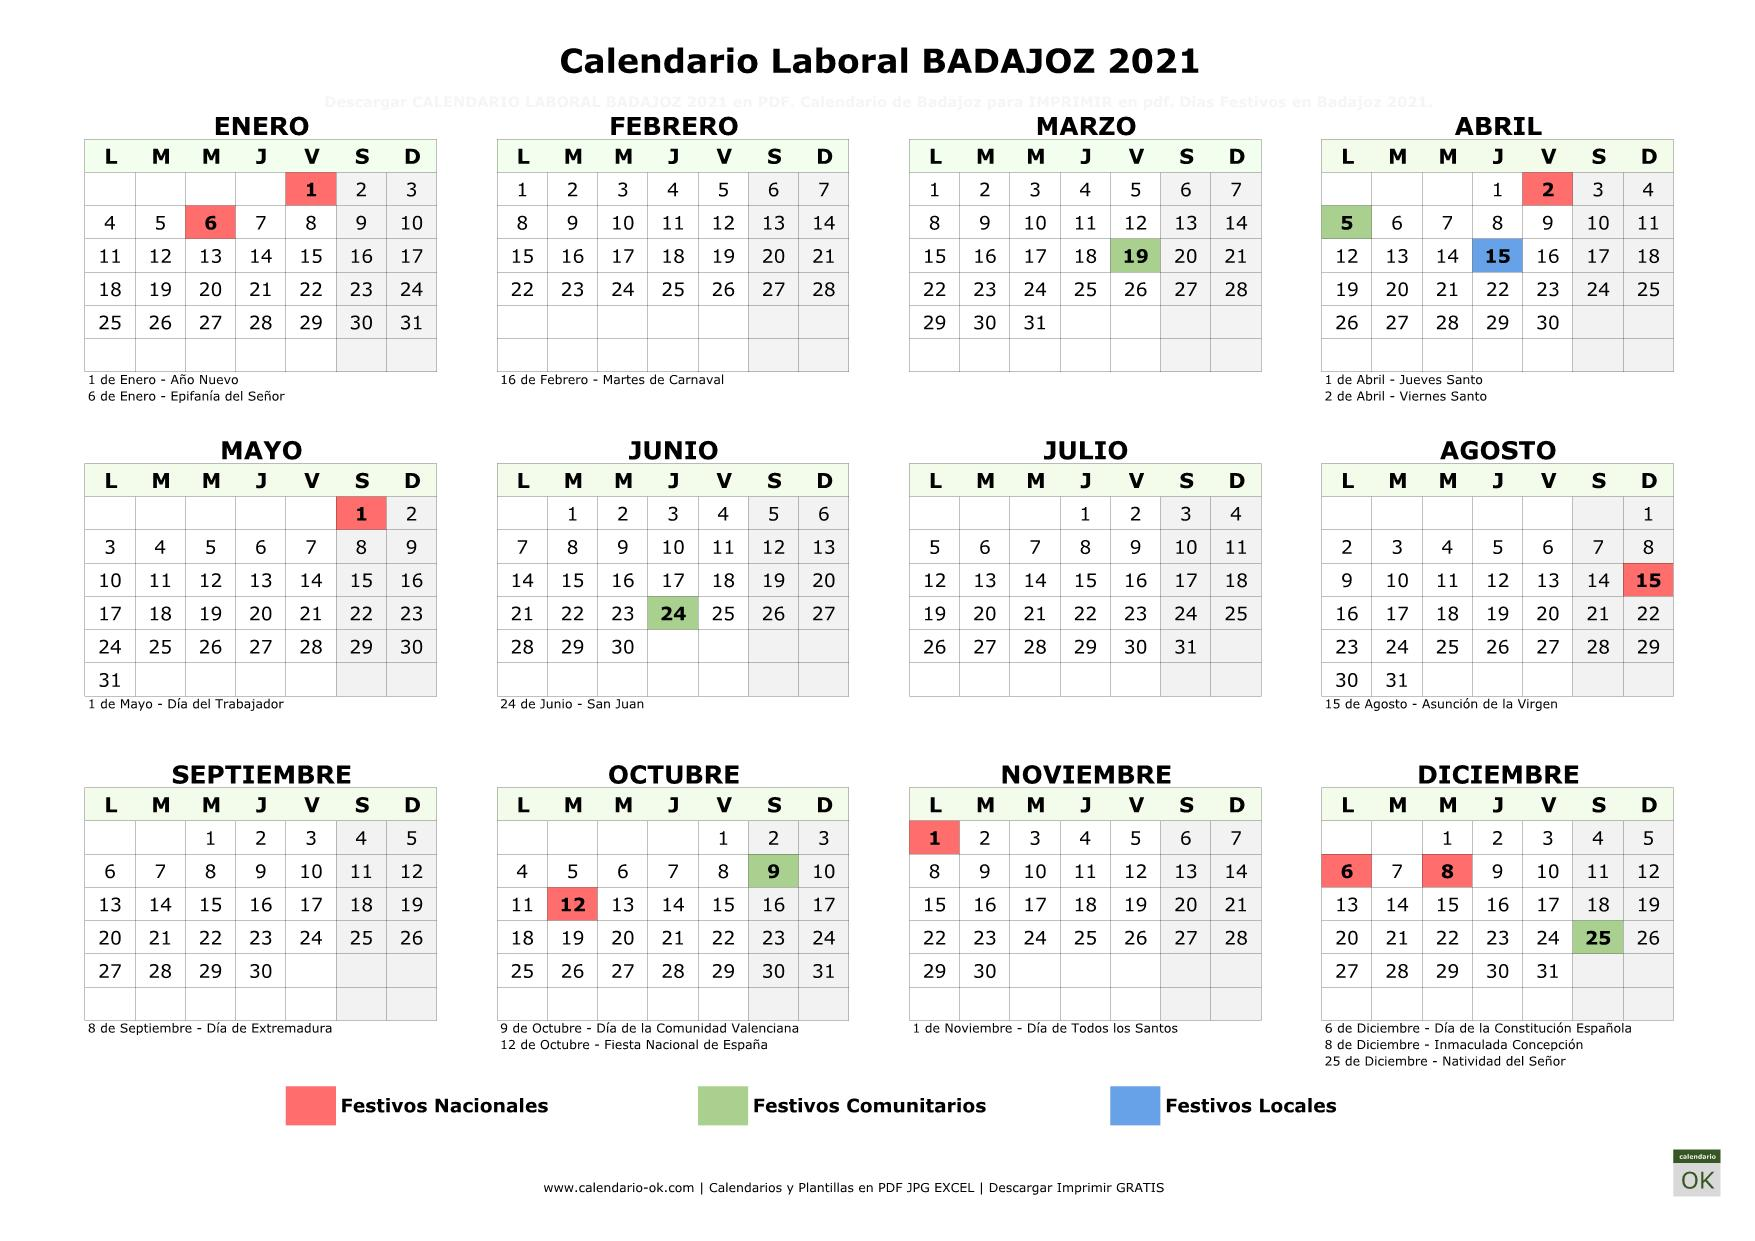 Calendario Laboral Badajoz 2021 horizontal